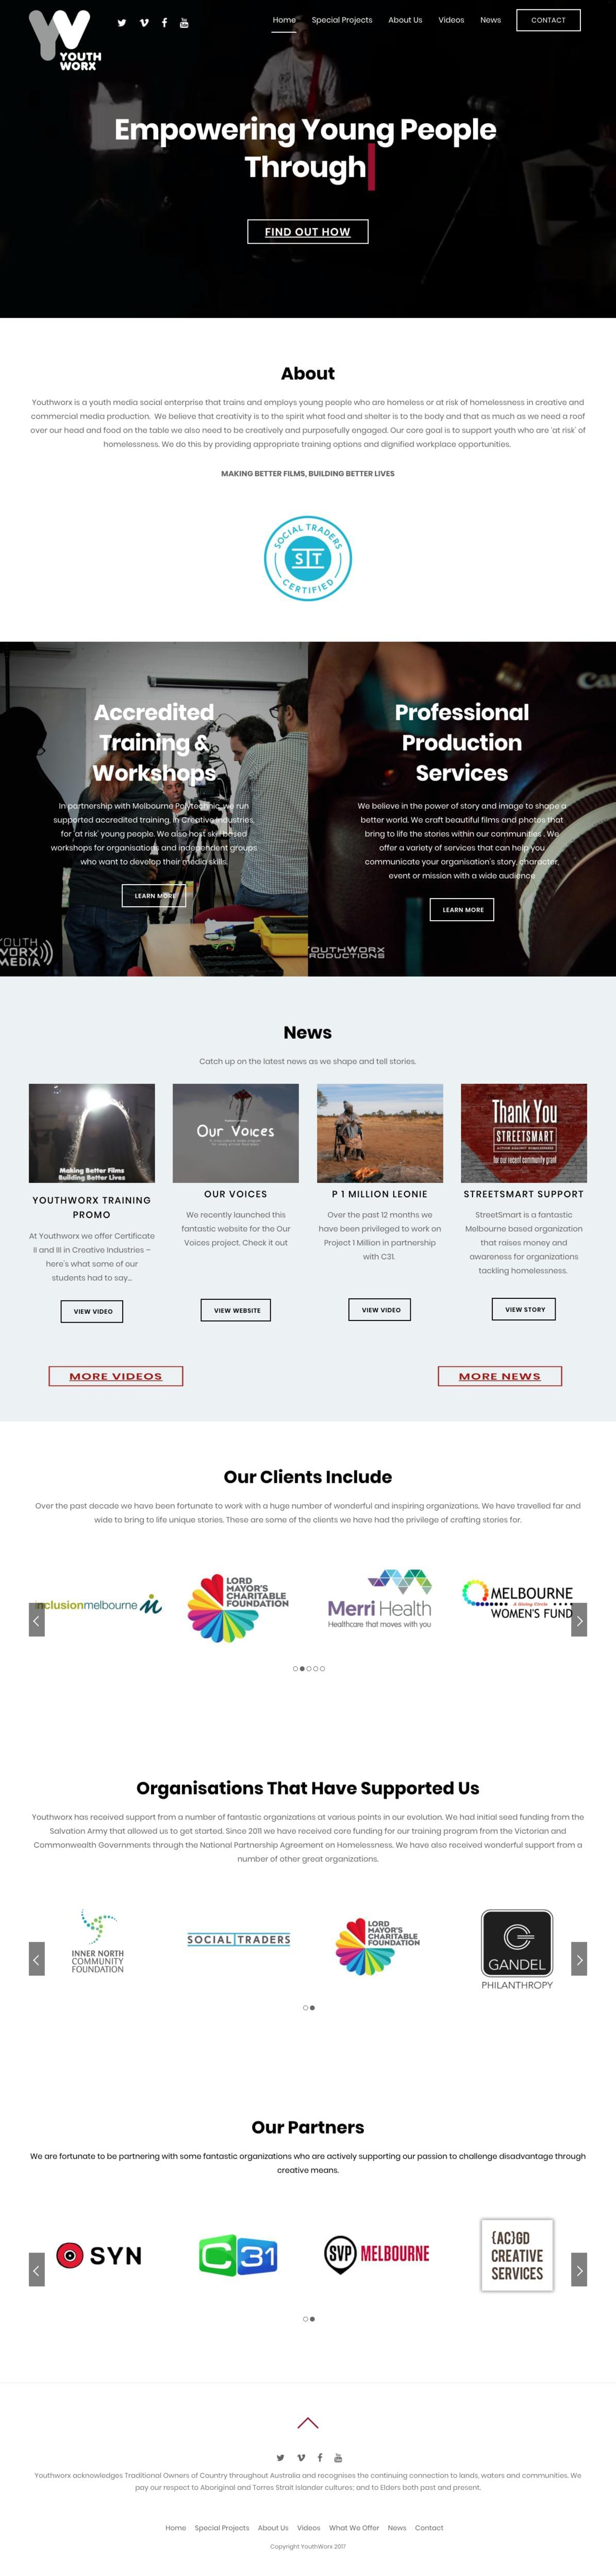 Build in WordPress Theme customisation by ihsanatkia - 111997